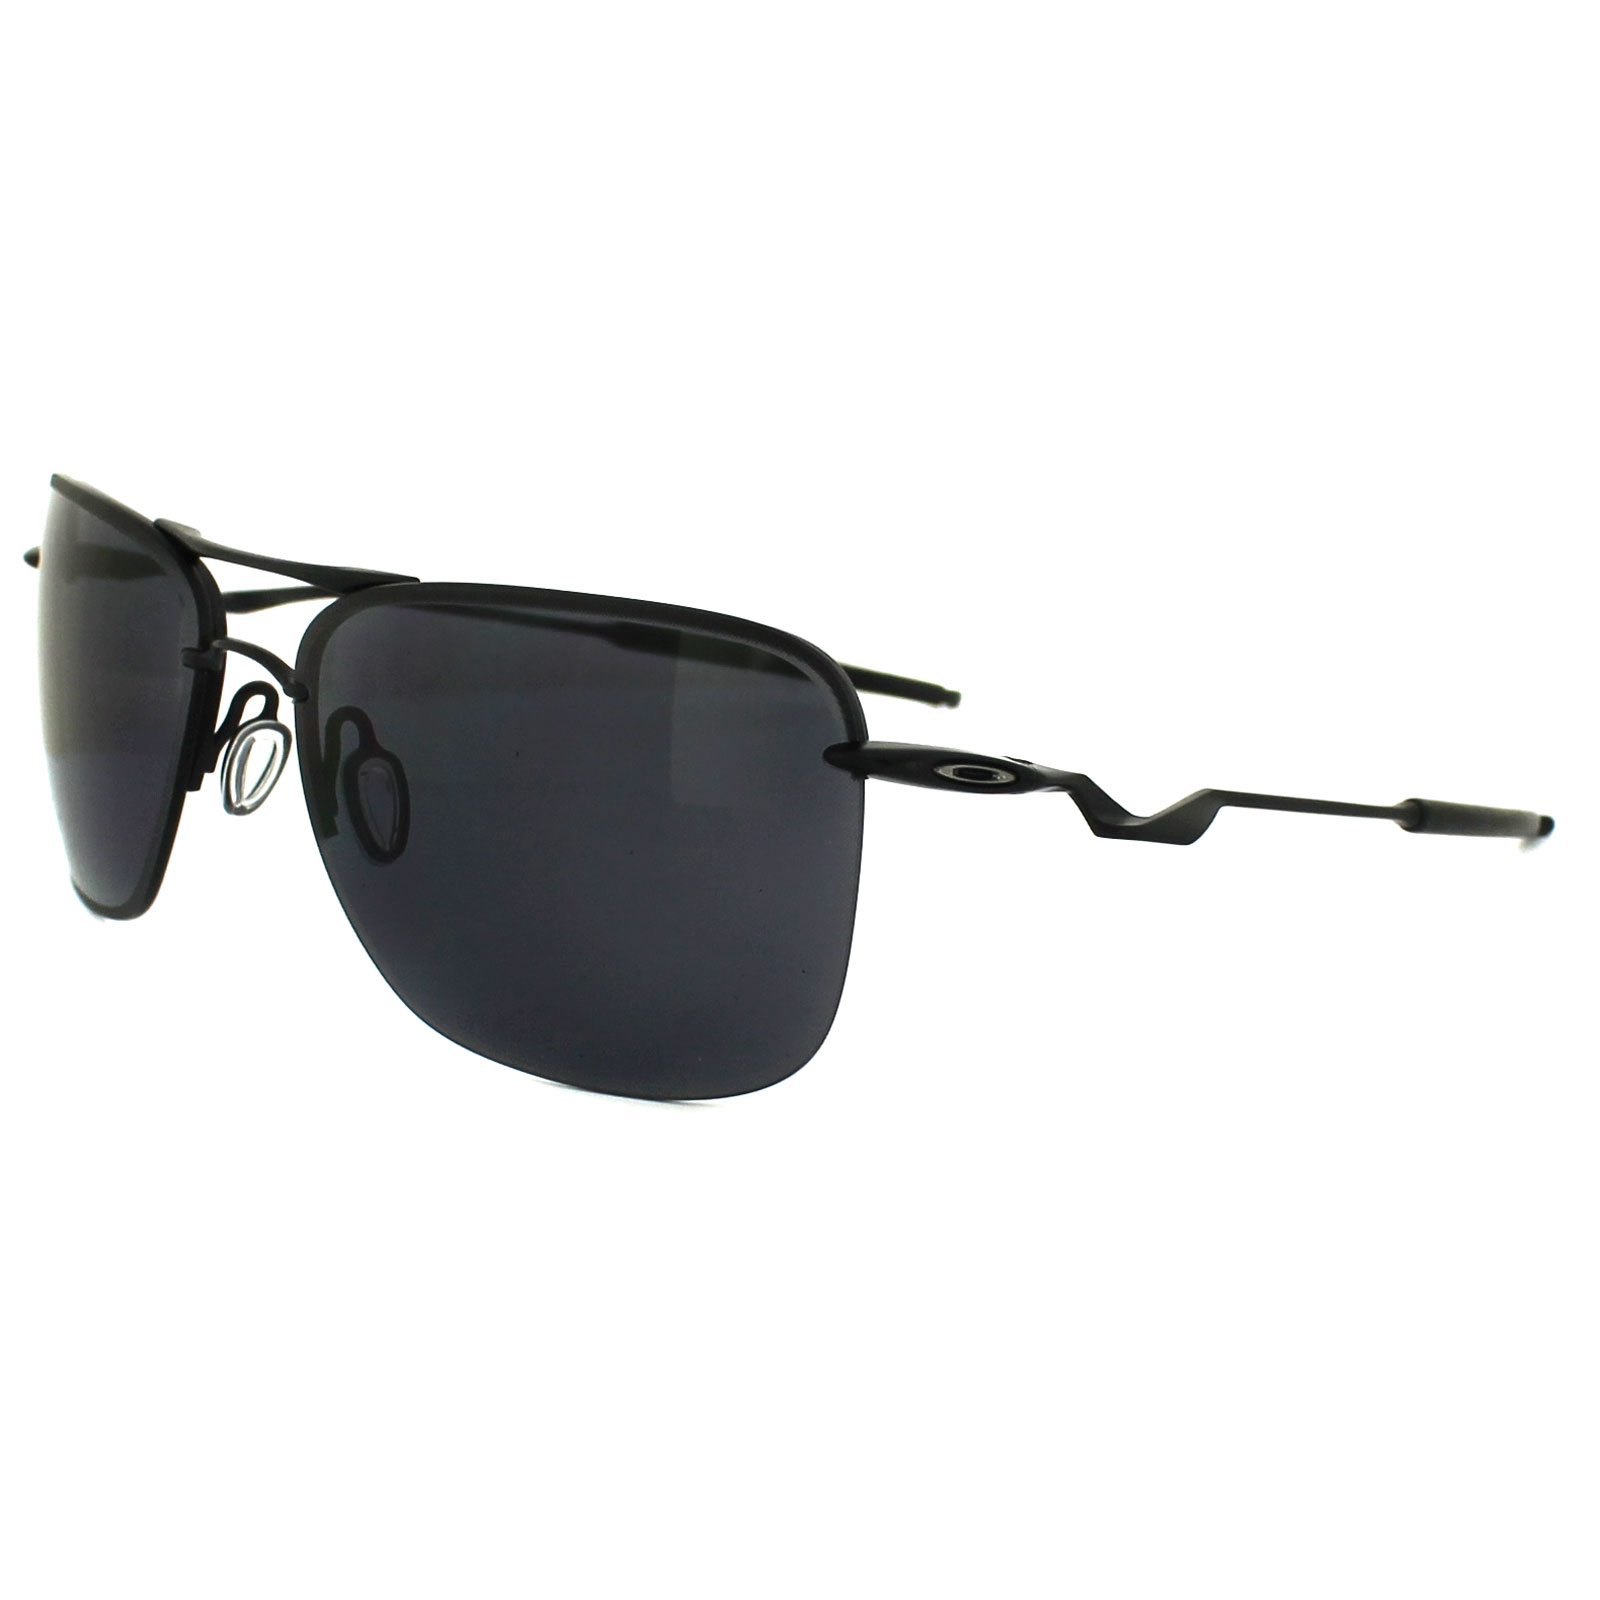 dcb3de97af Cheap Oakley Tailhook Sunglasses - Discounted Sunglasses